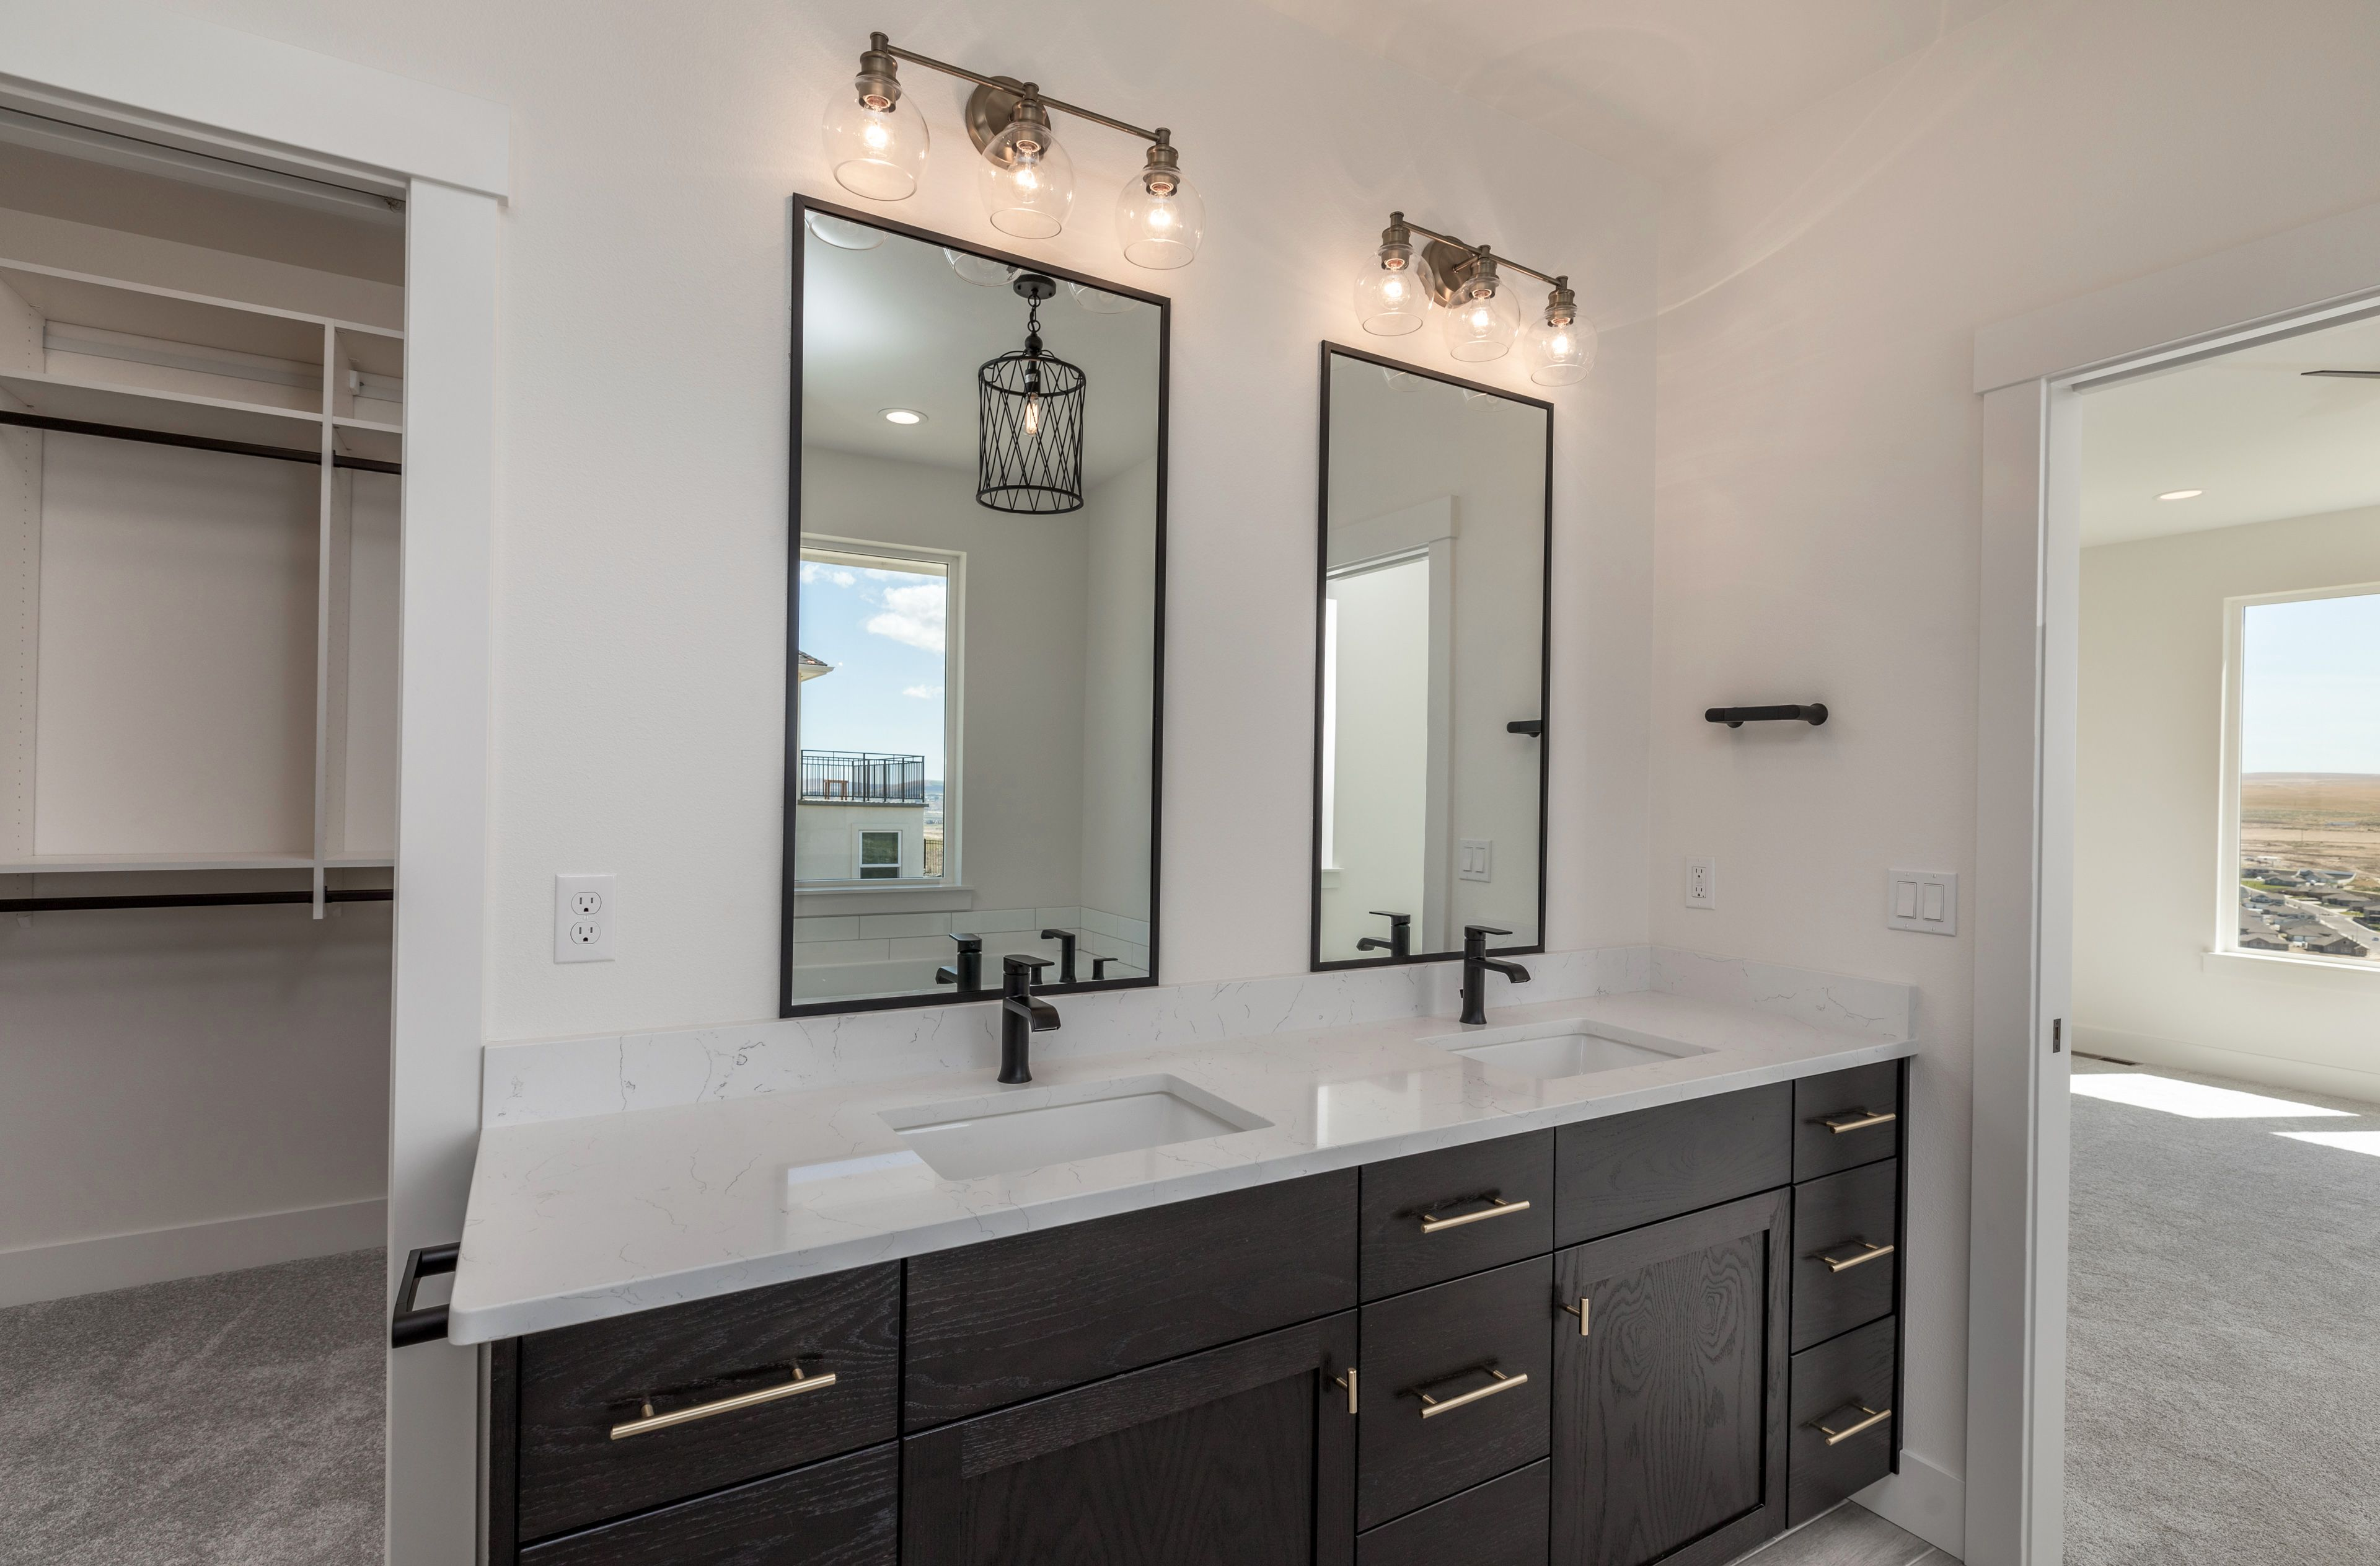 Bathroom featured in the LOT 13 The Chloe#2 By Gretl Crawford Homes in Richland, WA